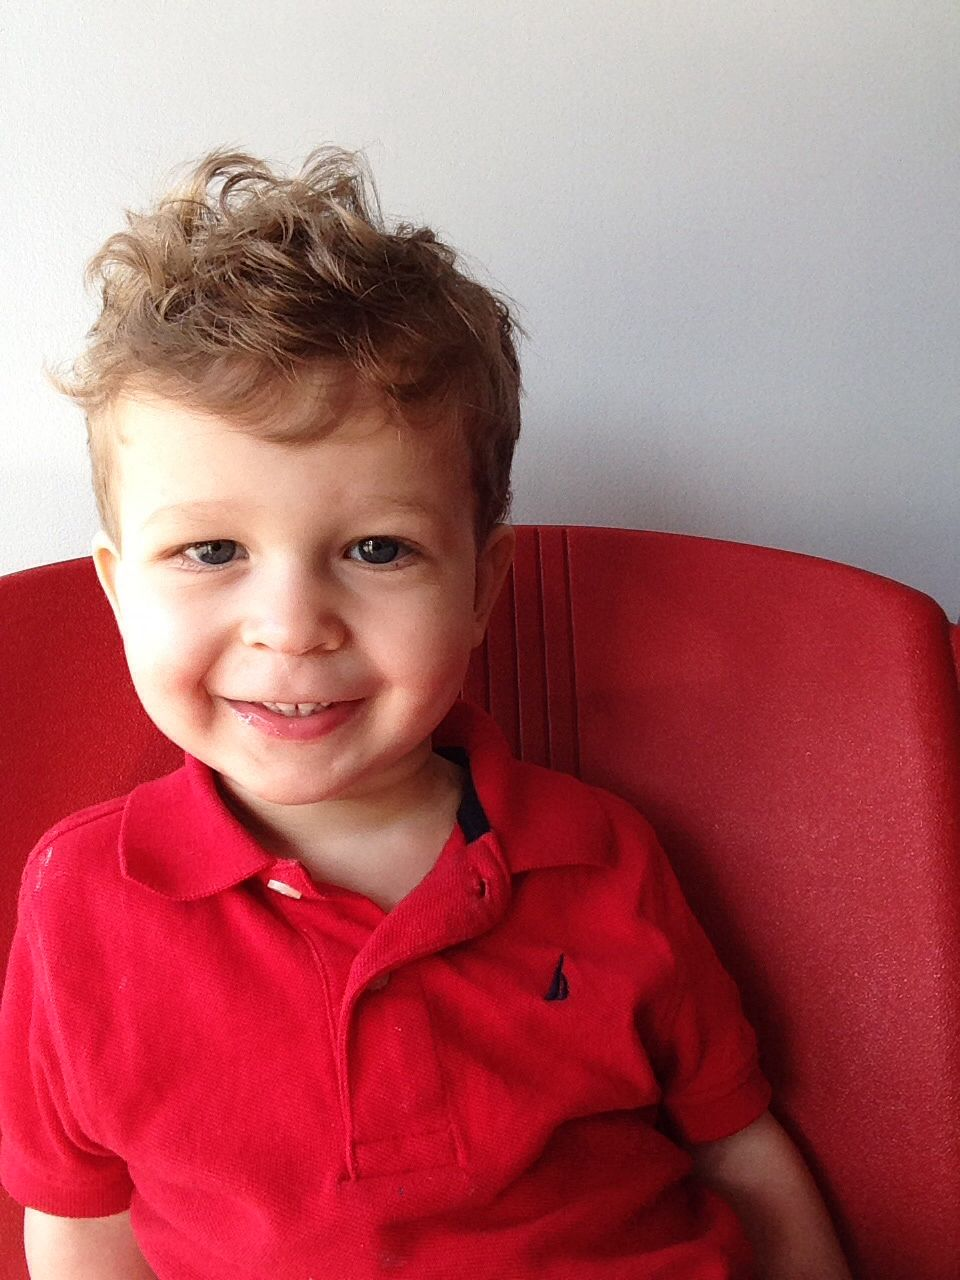 Toddler Curly Hairstyles Cute Haircut Hairstyle For Toddler Boy My 20 Month Old Short On